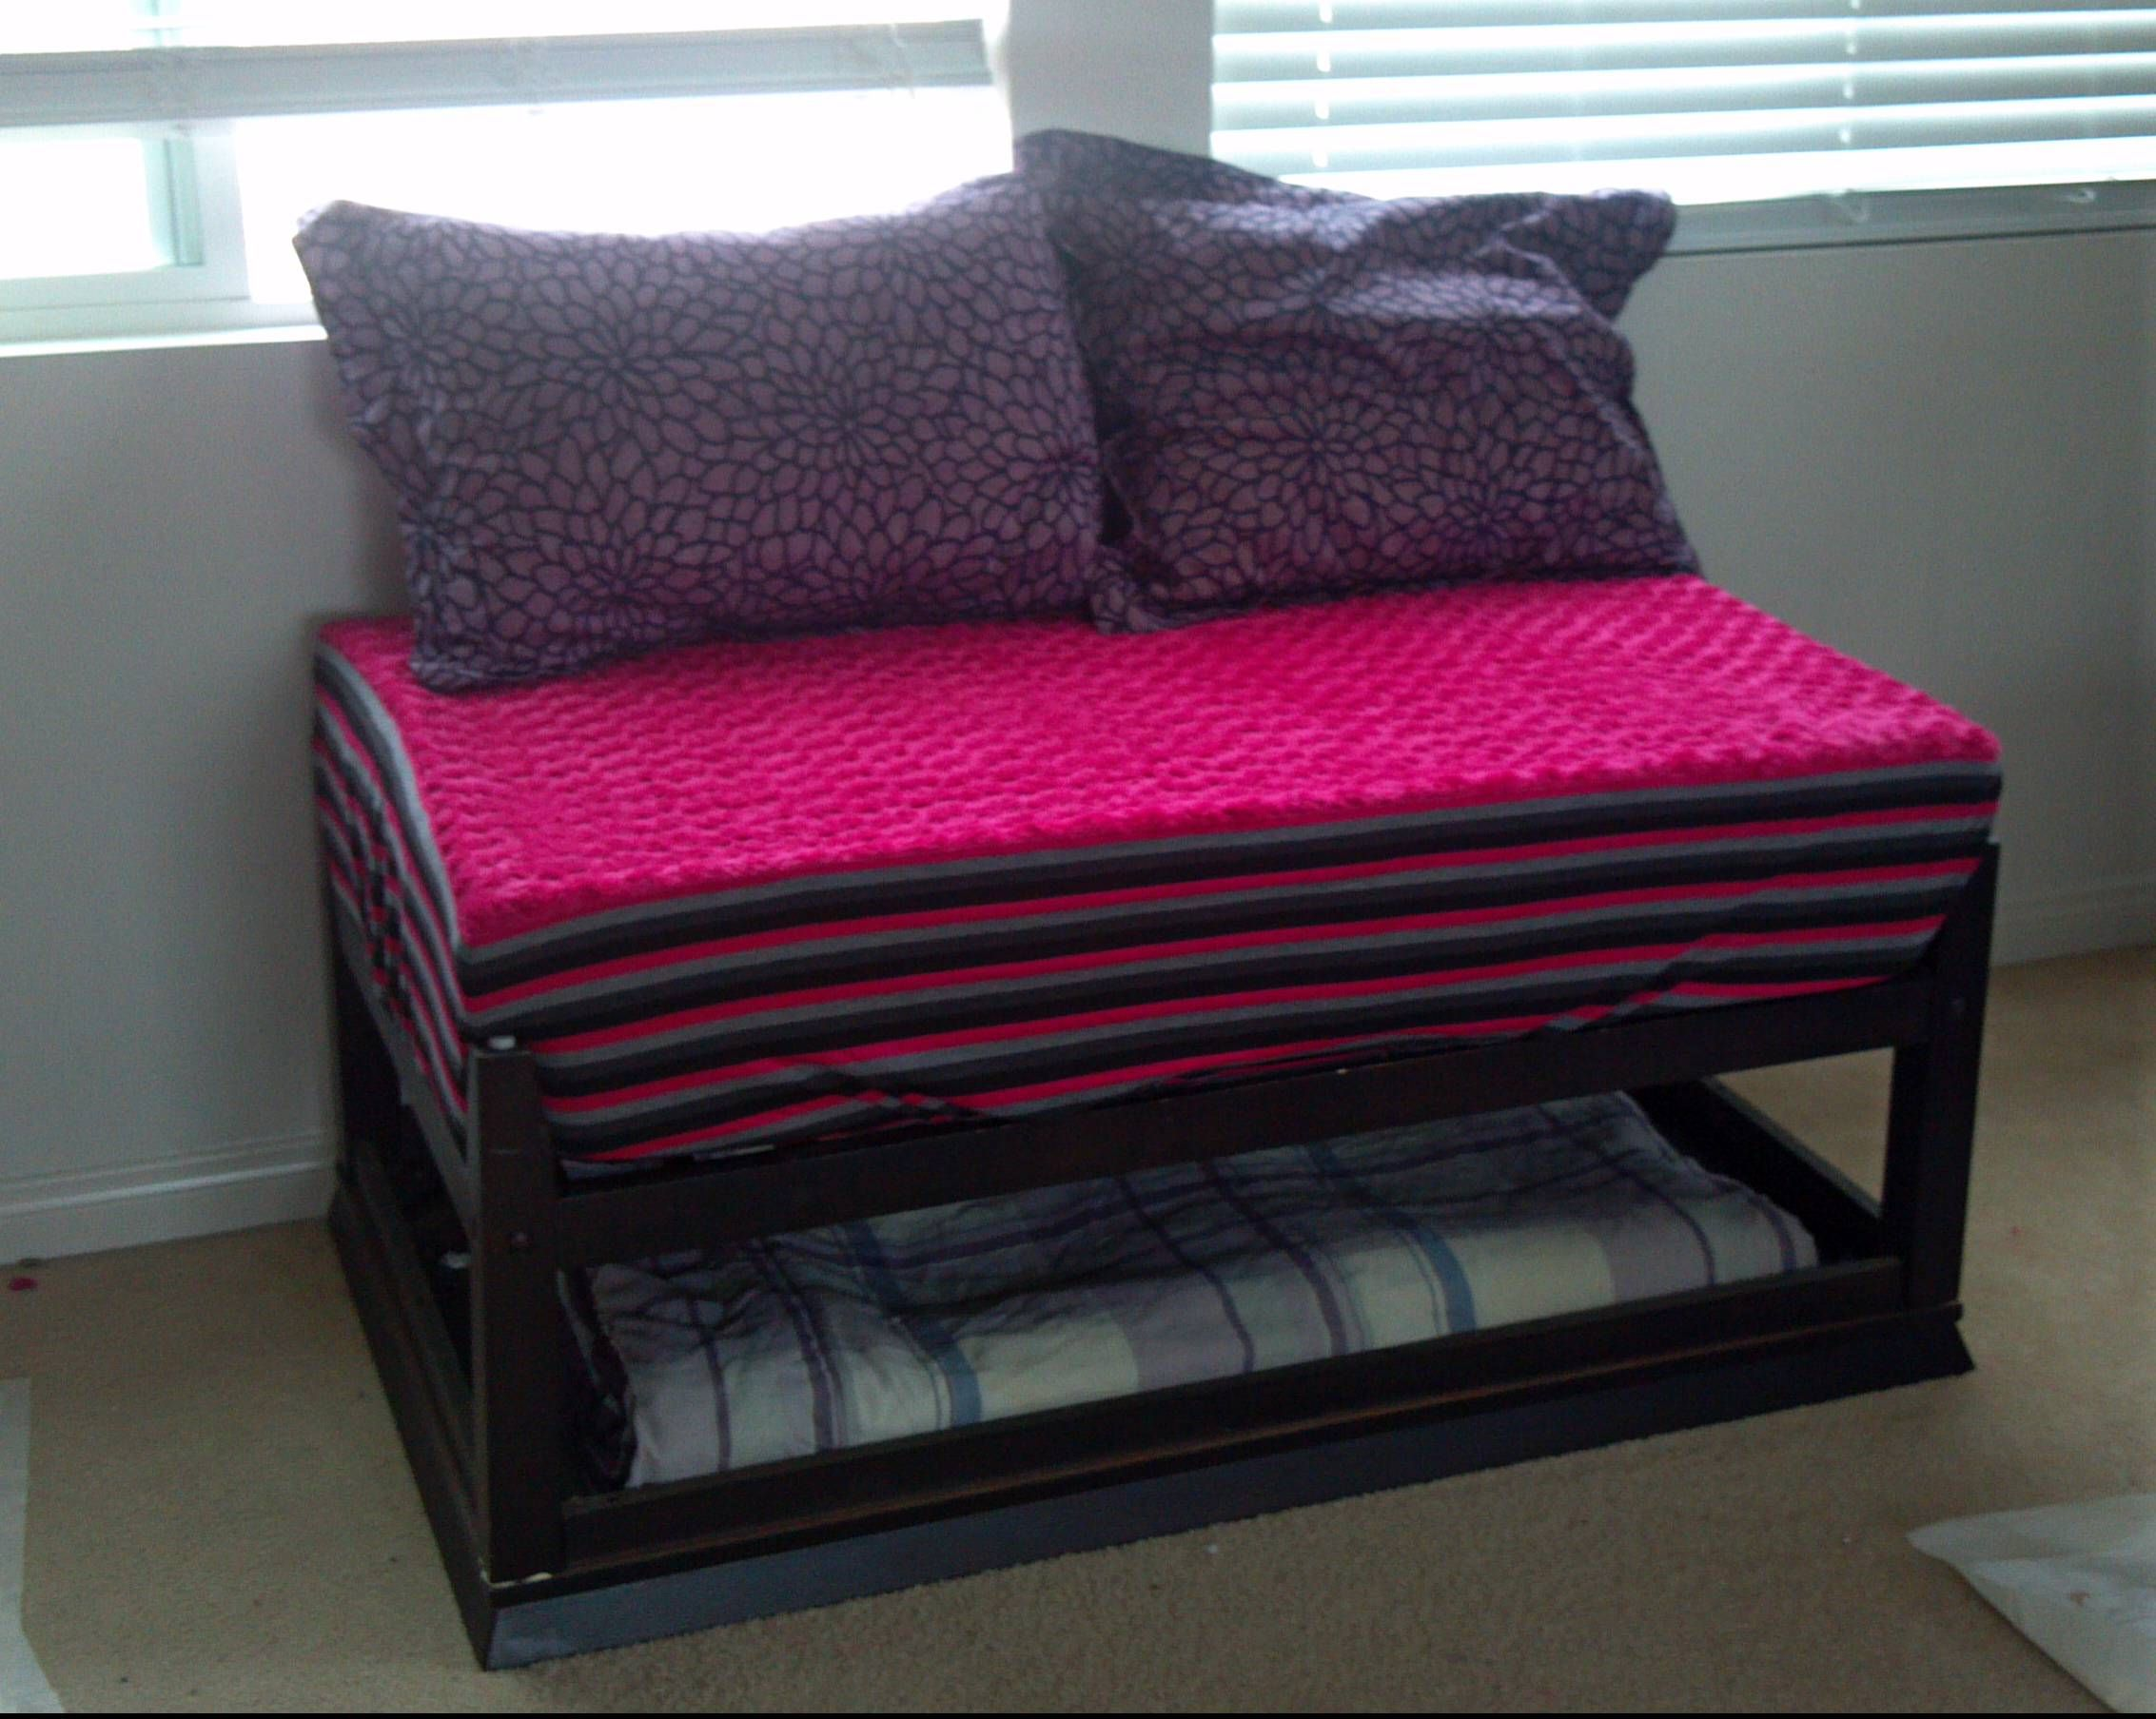 Coffee Table turned into a Day Bed for my Niece!! Found